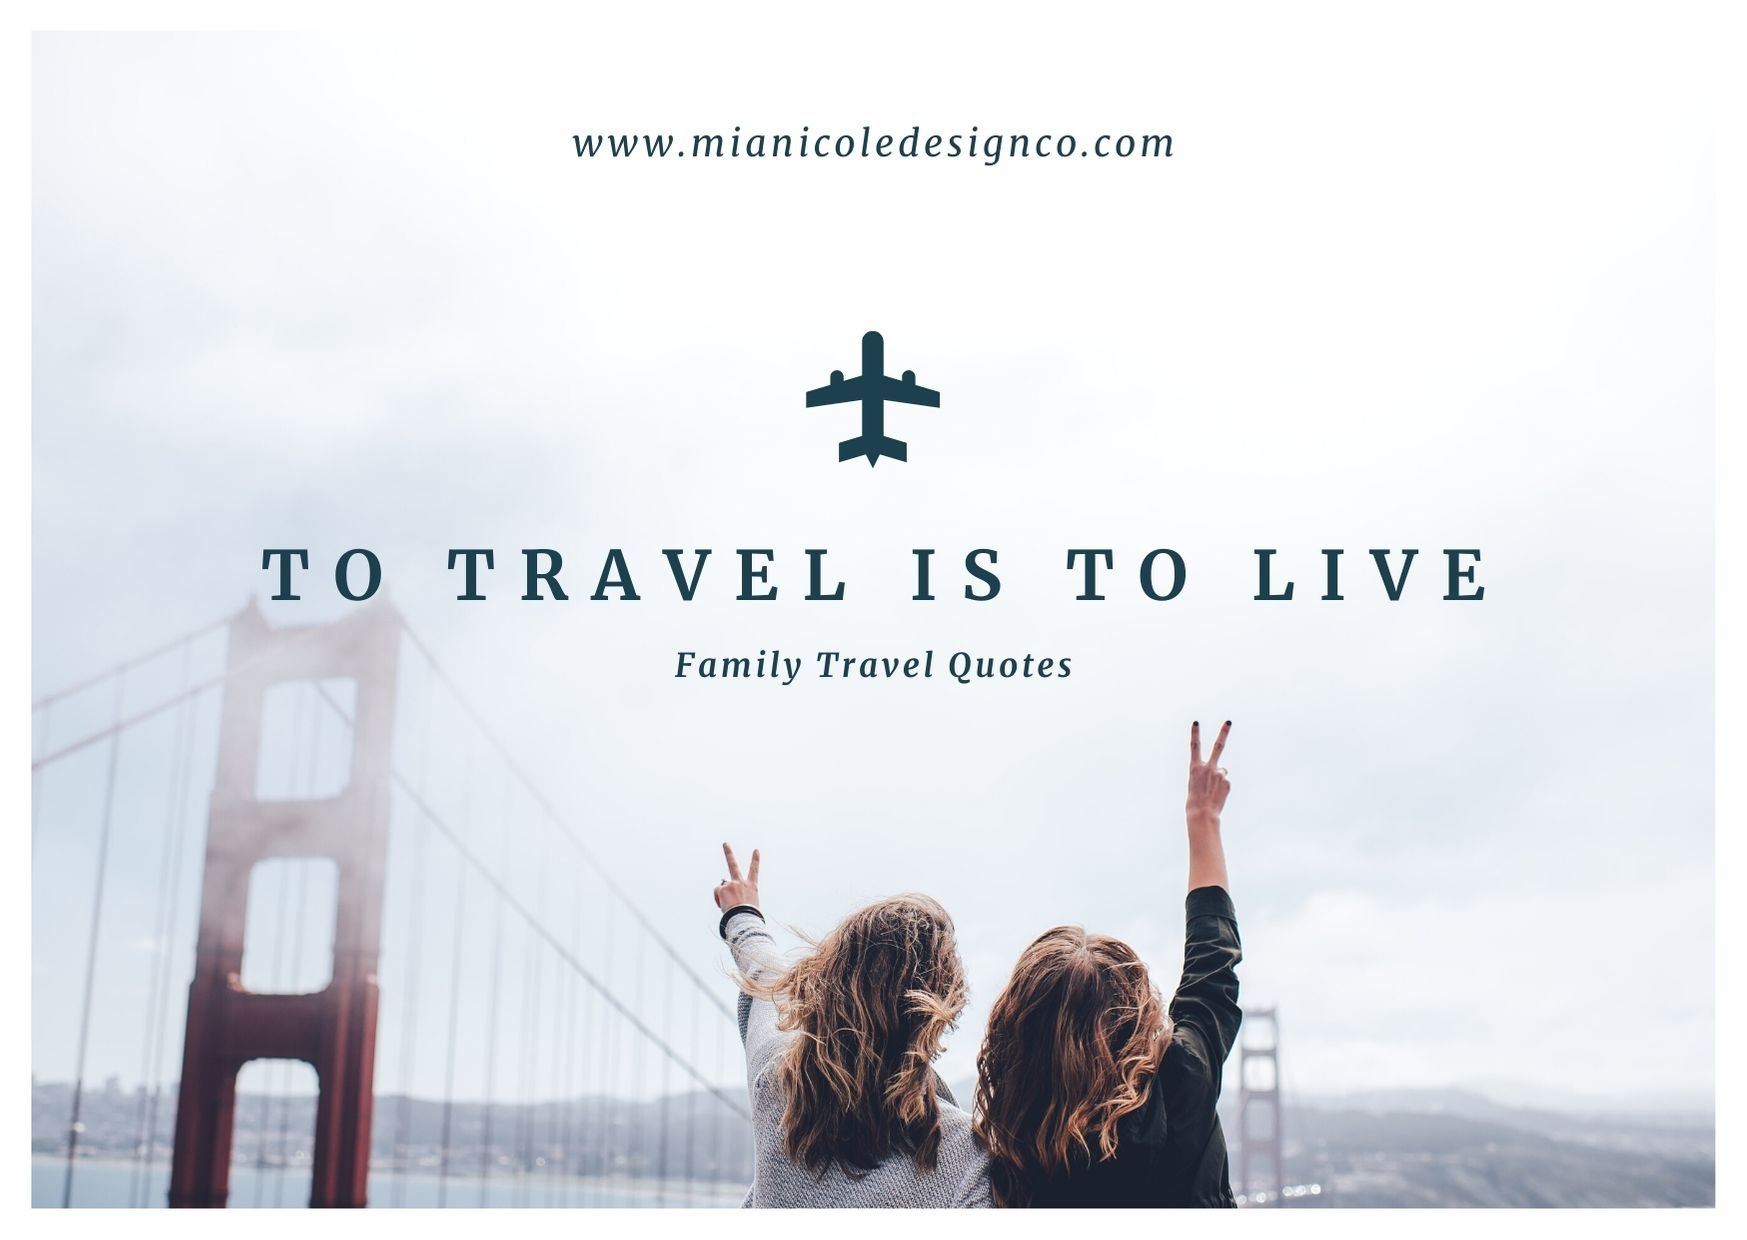 to travel is to live quote with photo of two girls holding up peace signes at the golden gate bridge